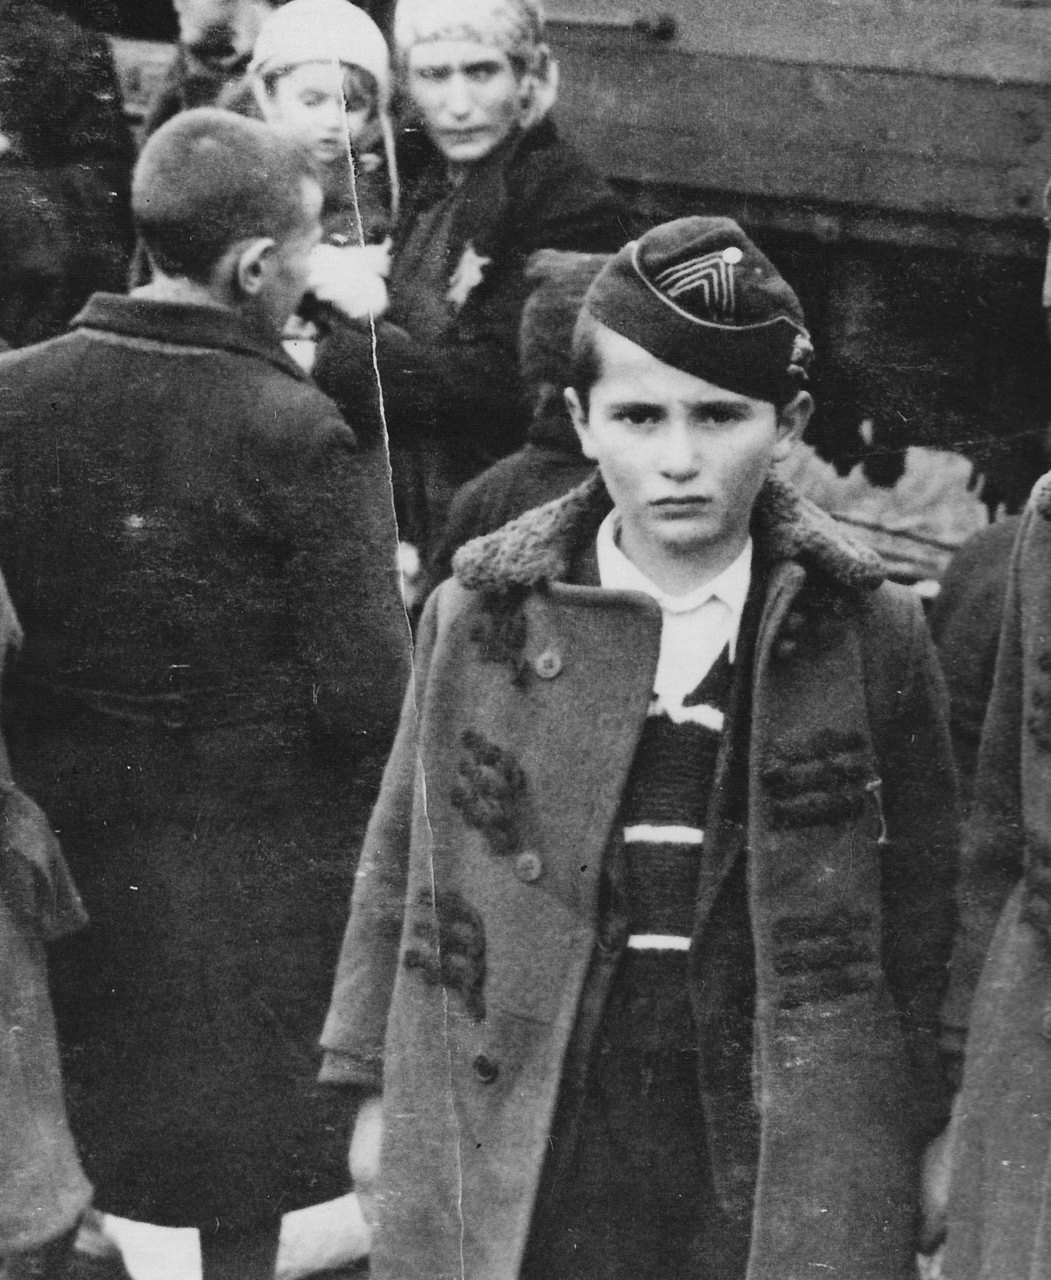 Boy in Auschwitz concentration camp